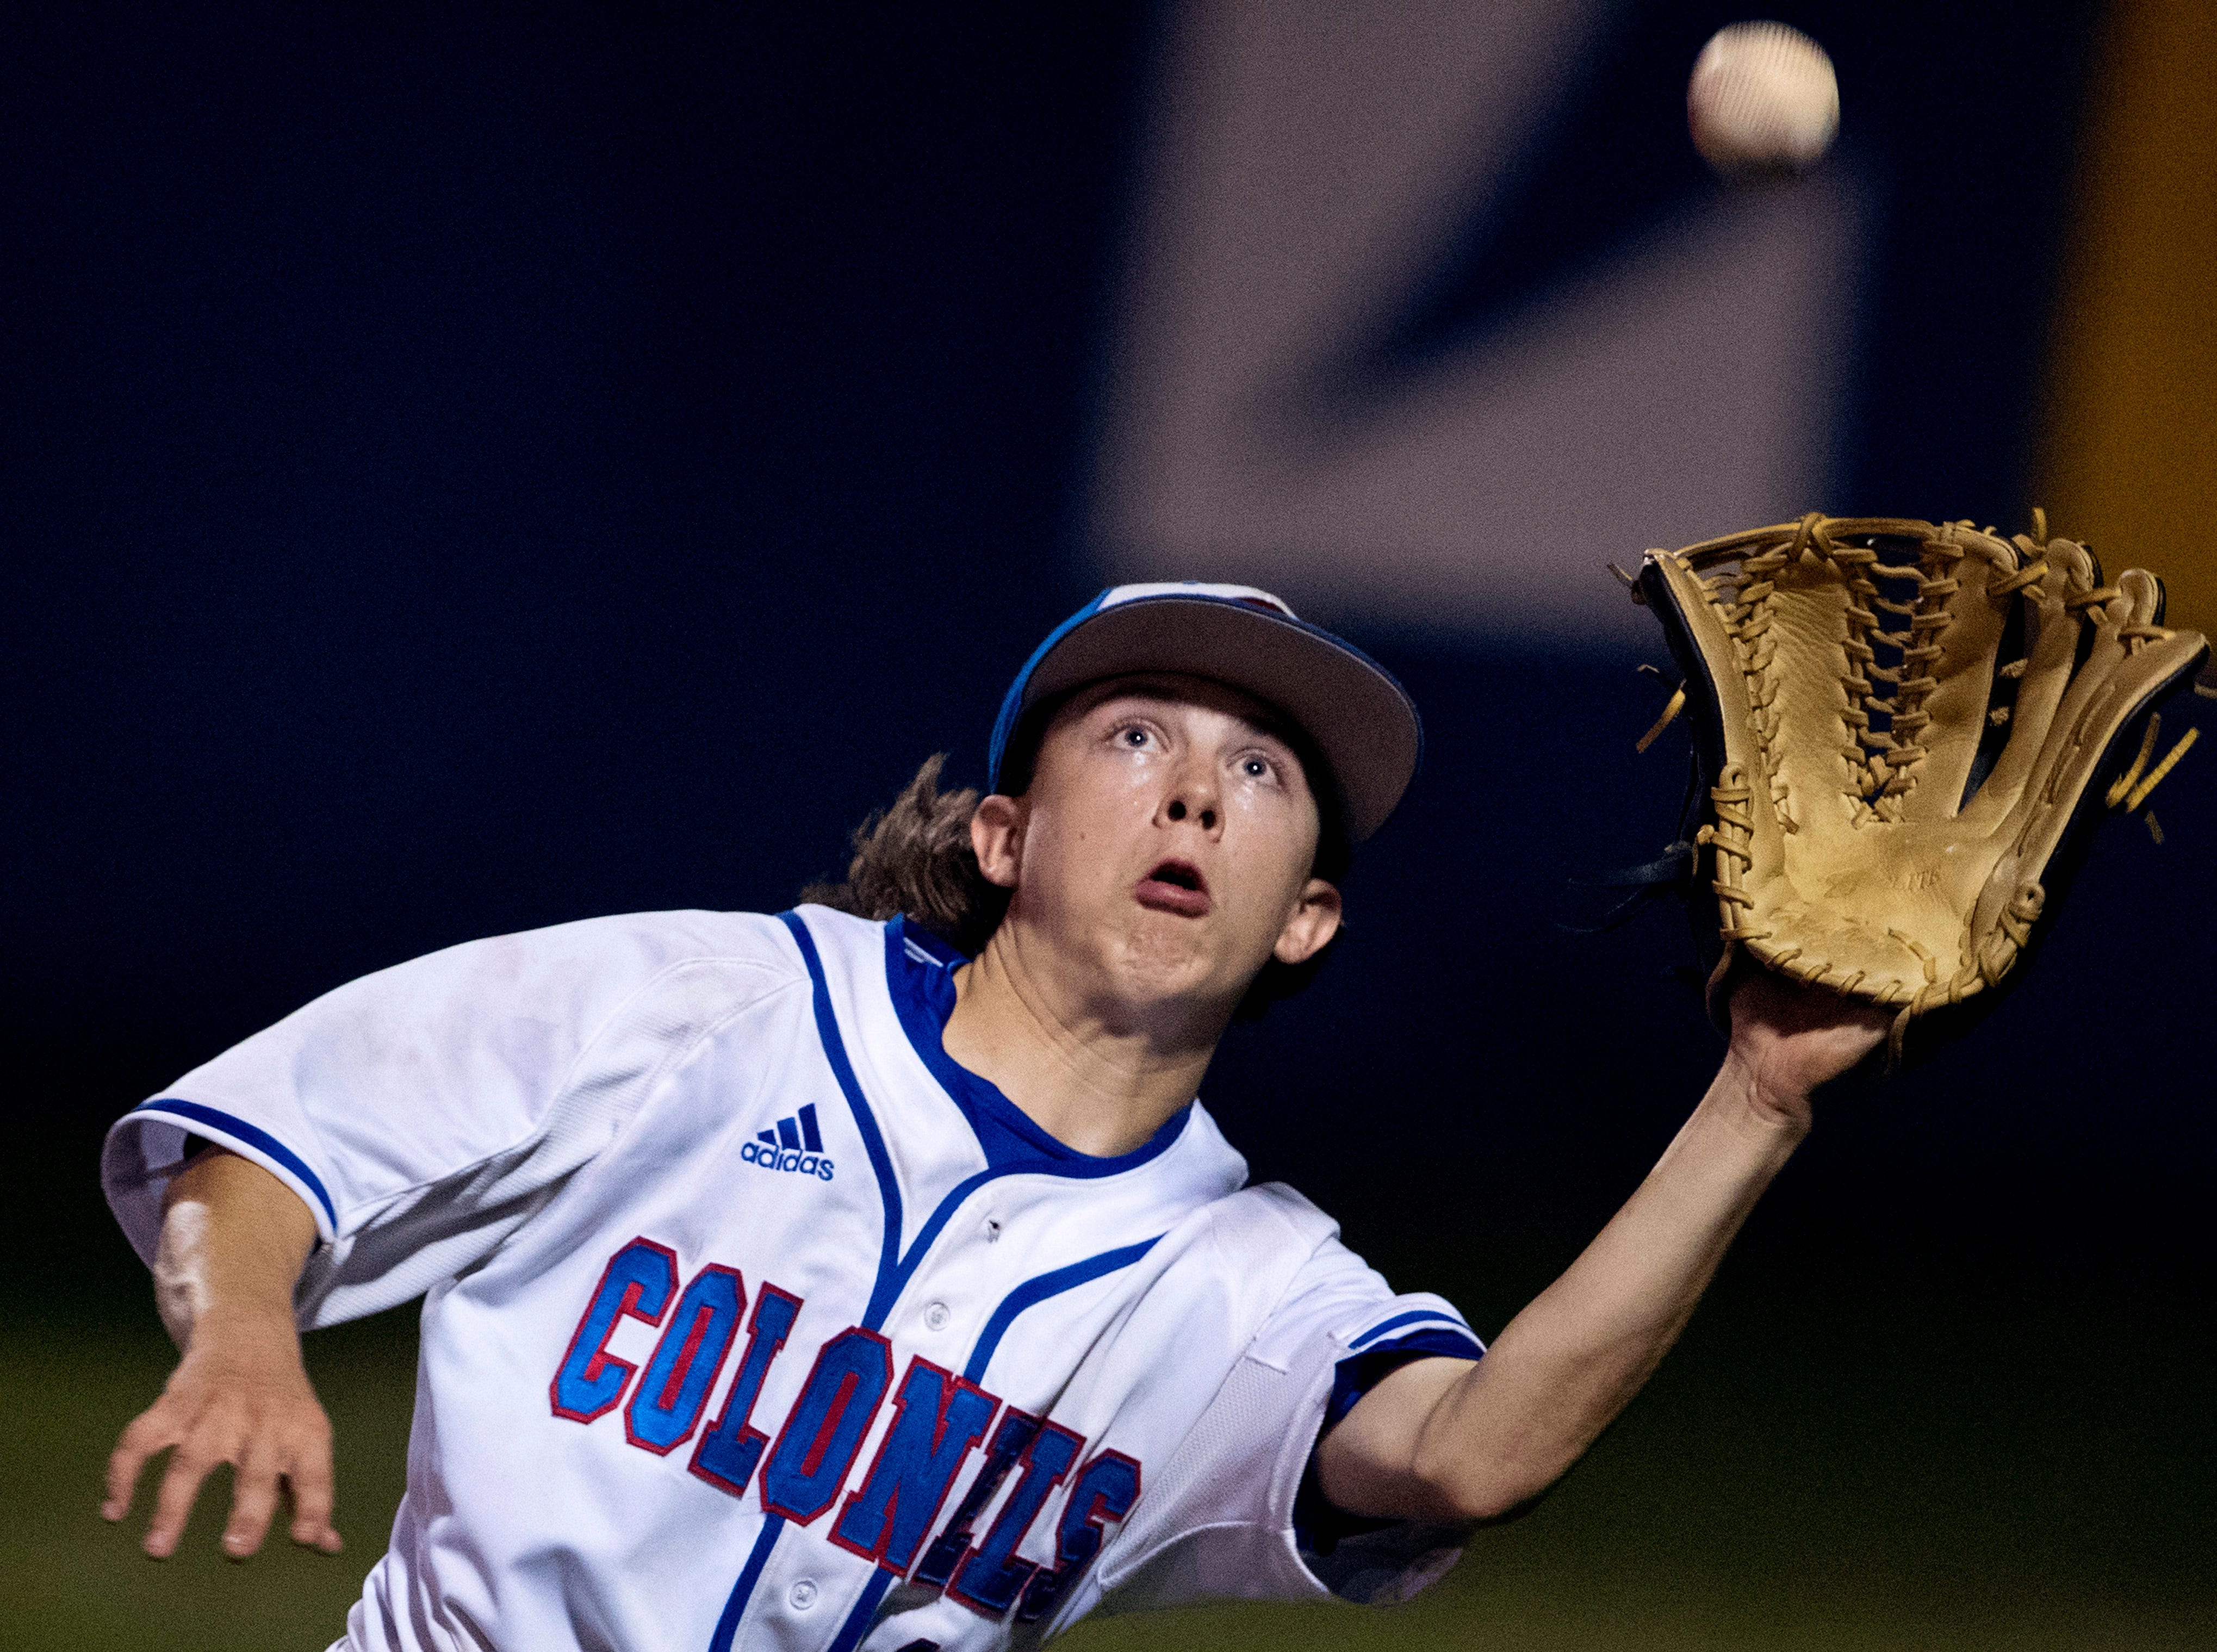 Christian County right fielder Bryson Brown hauls in a fly ball for the third out of the sixth inning in their game against Henderson County during their Second Region semifinal baseball tournament at Christian County High School in Hopkinsville, Ky., Wednesday evening.